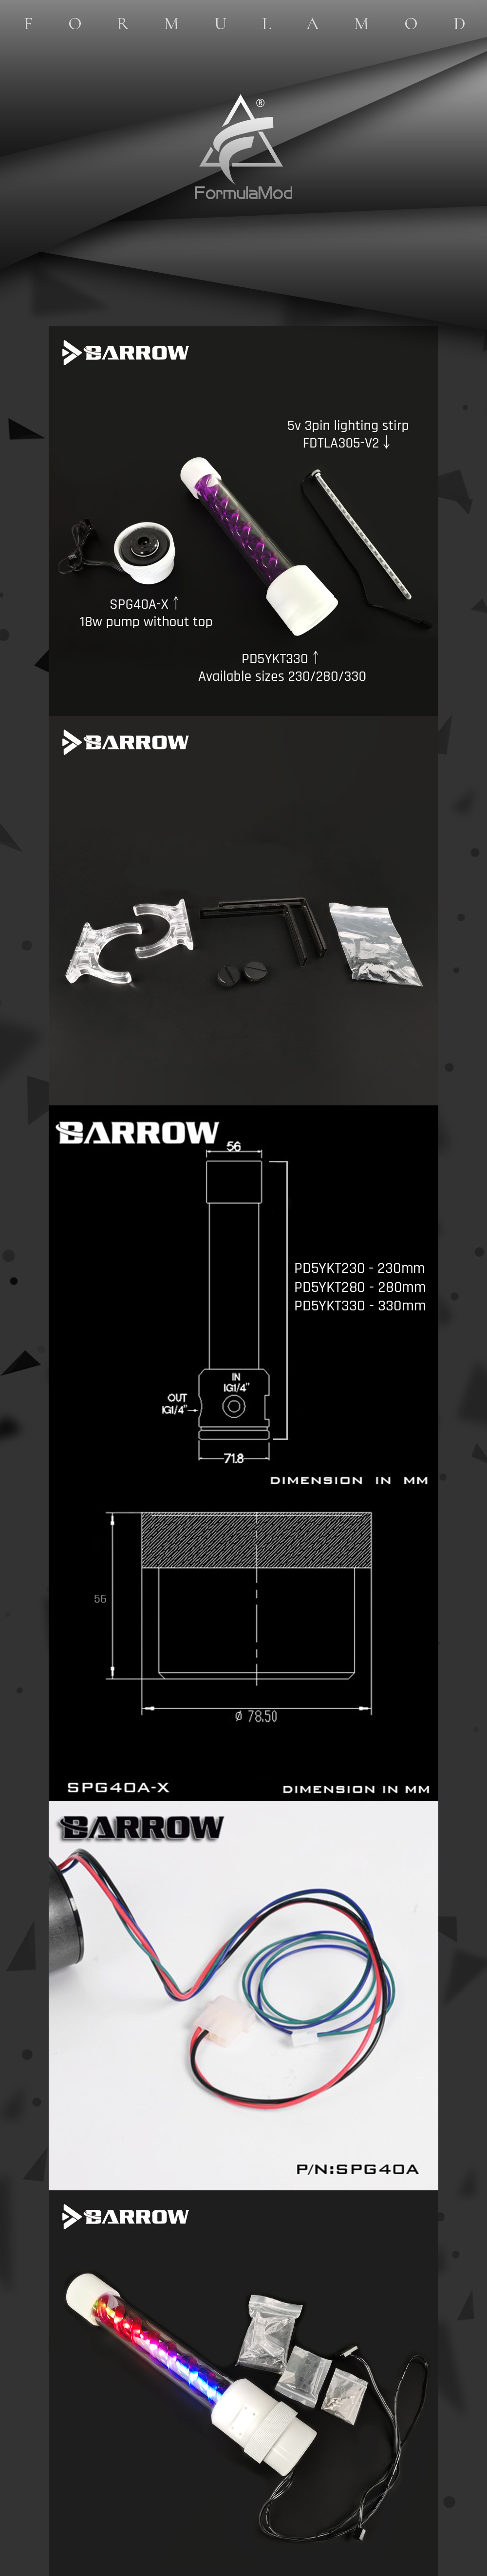 Barrow SPG40A-X, 18W PWM Combination Pump, Pump-reservoir Combination, With Virus-T Reservoir, 230/280/330 Reservoir Component